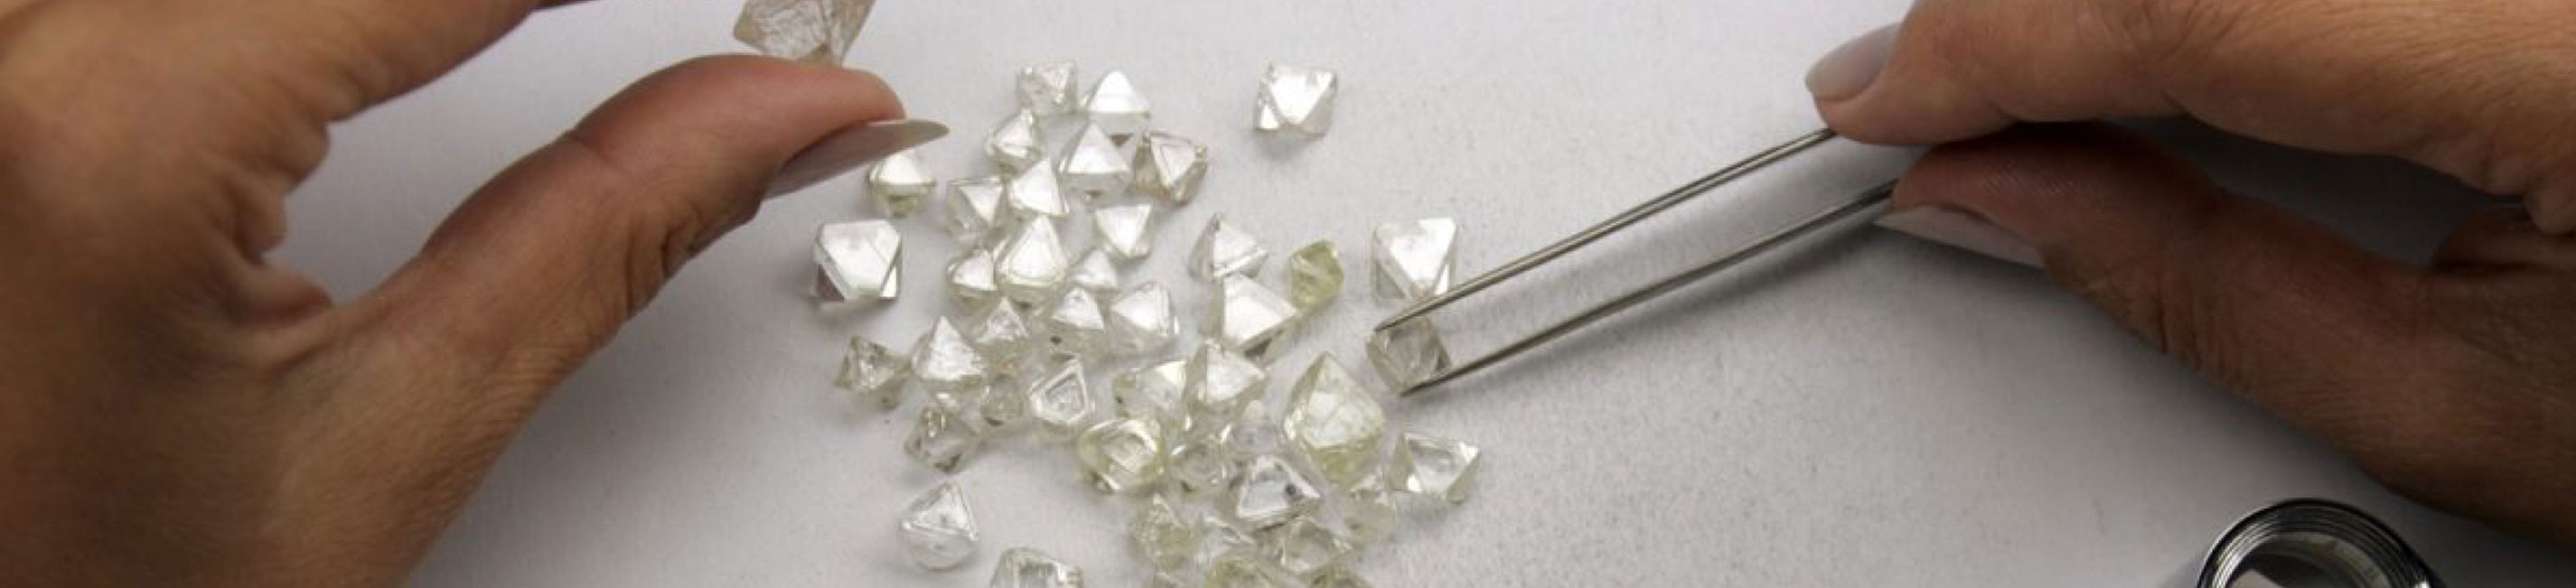 Rough diamonds being inspected.